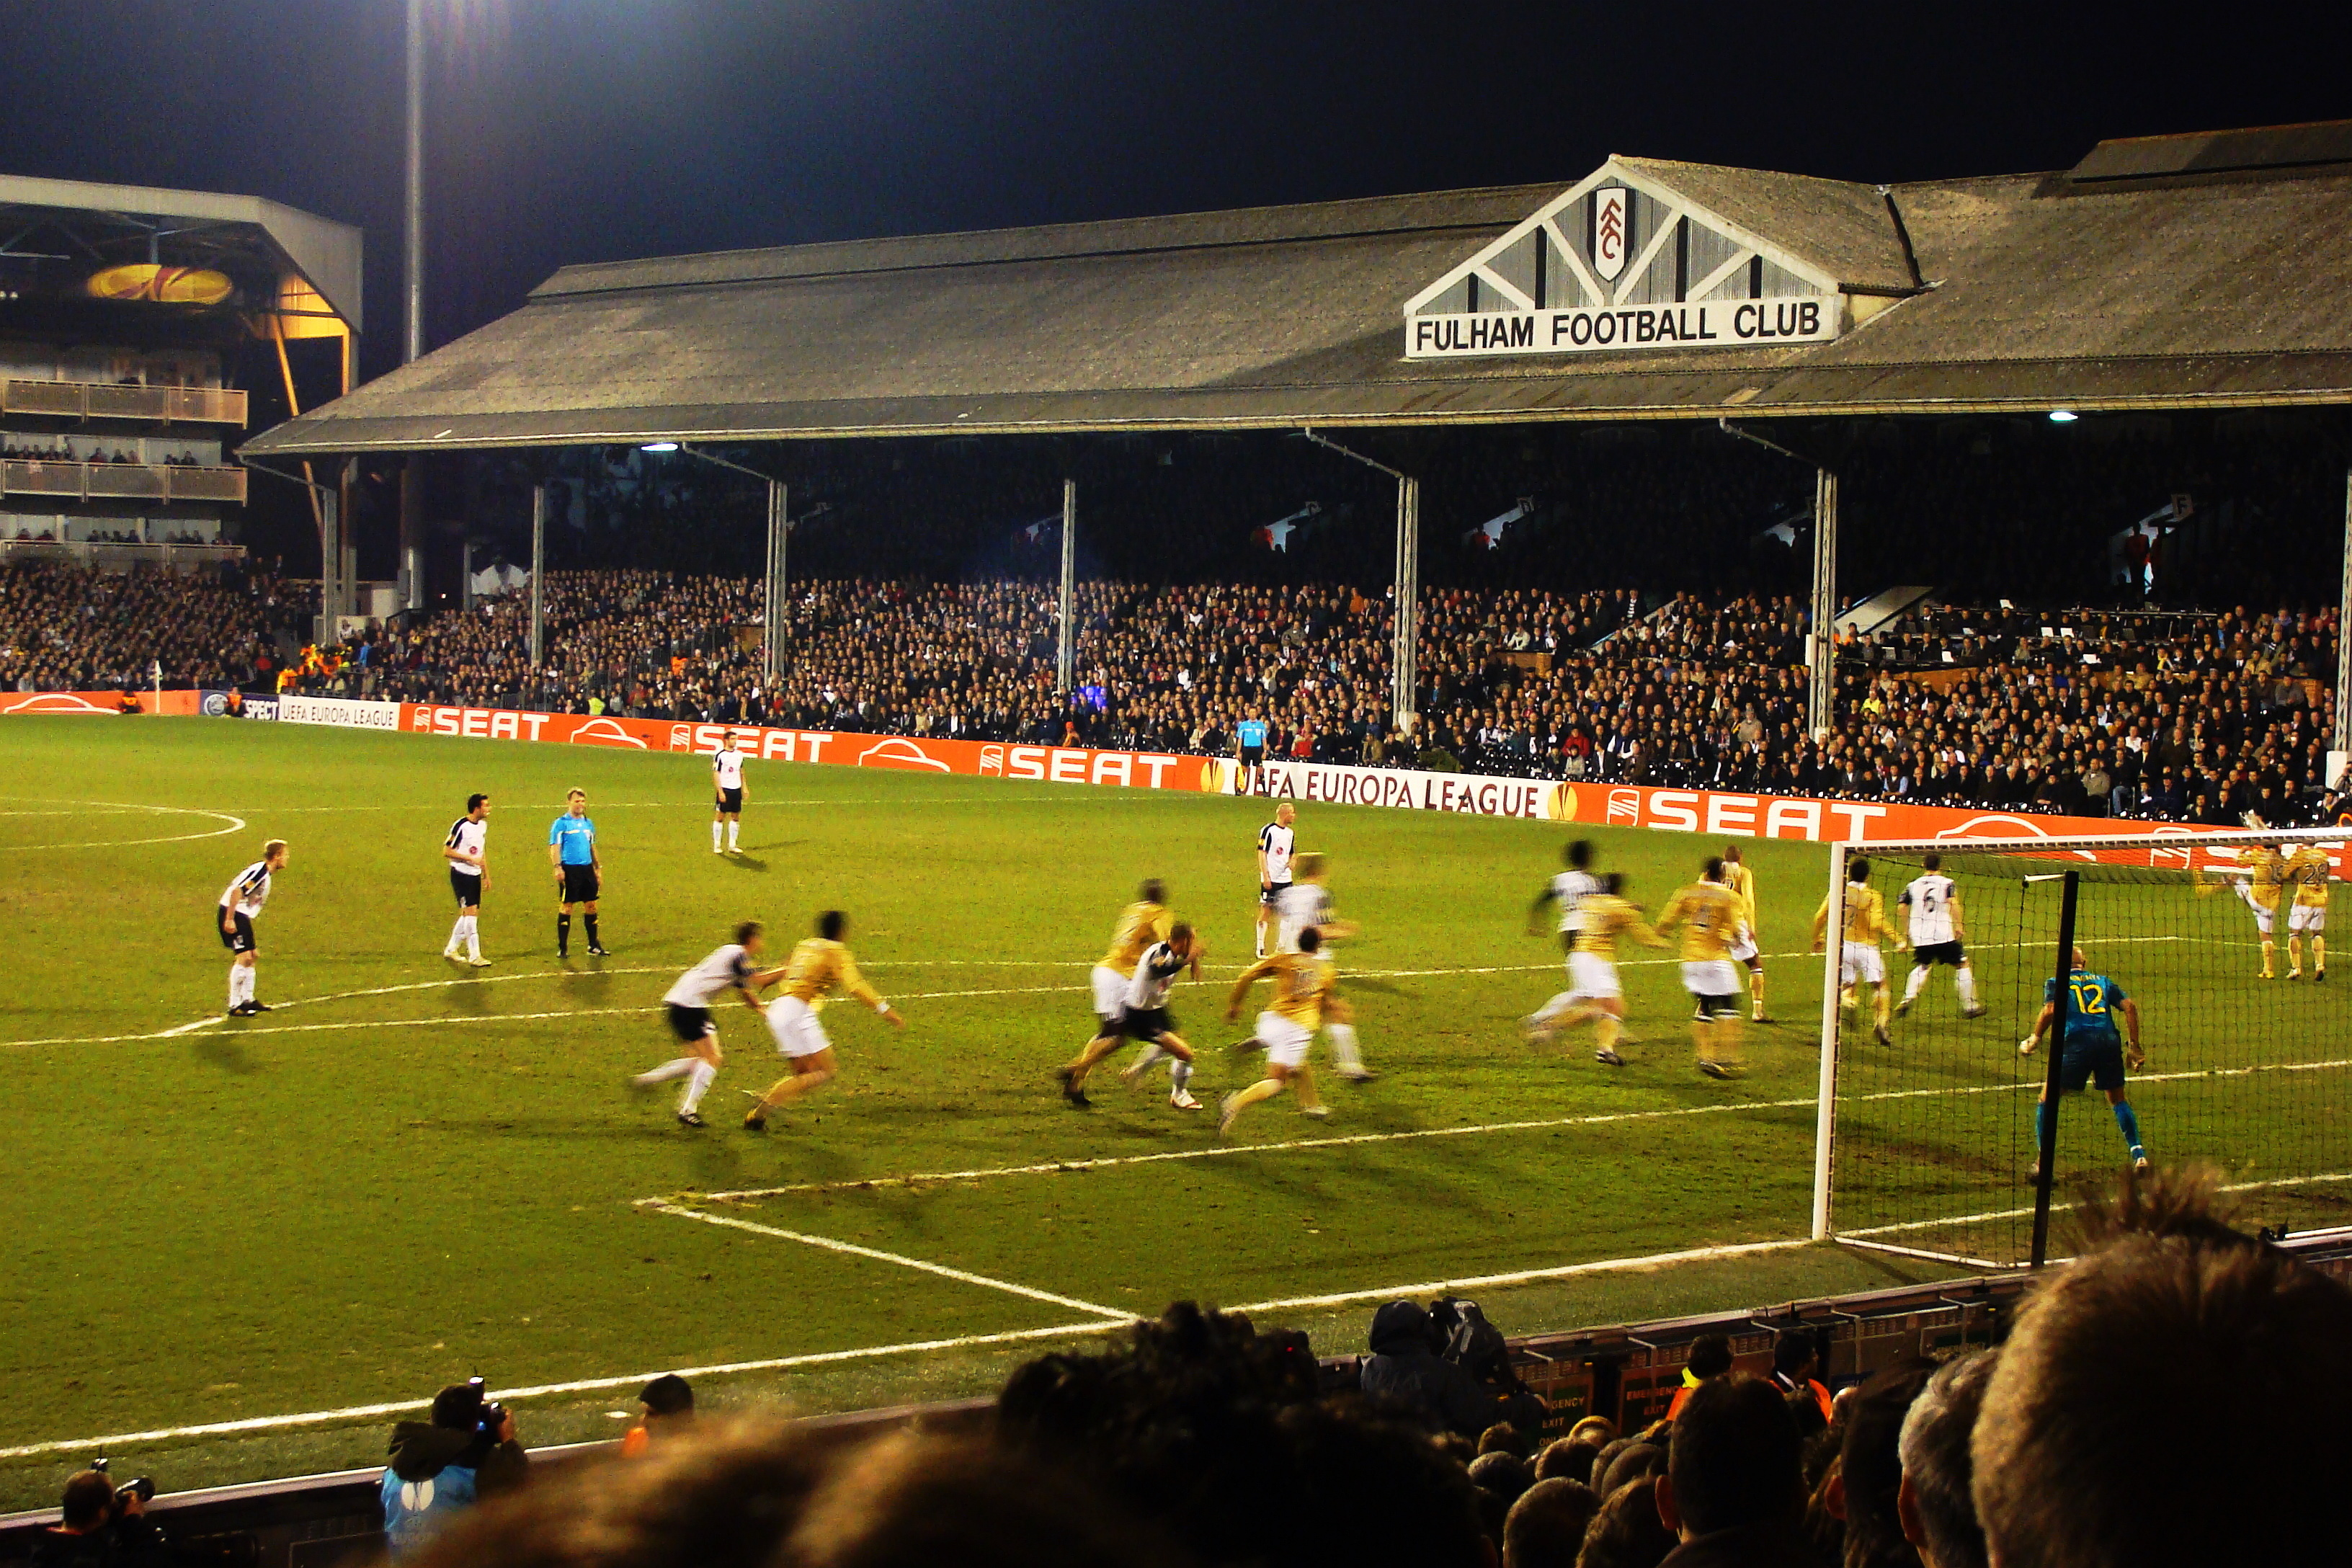 Fulham F C News: File:Fulham FC Vs Juventus FC, Europa League, 18 March